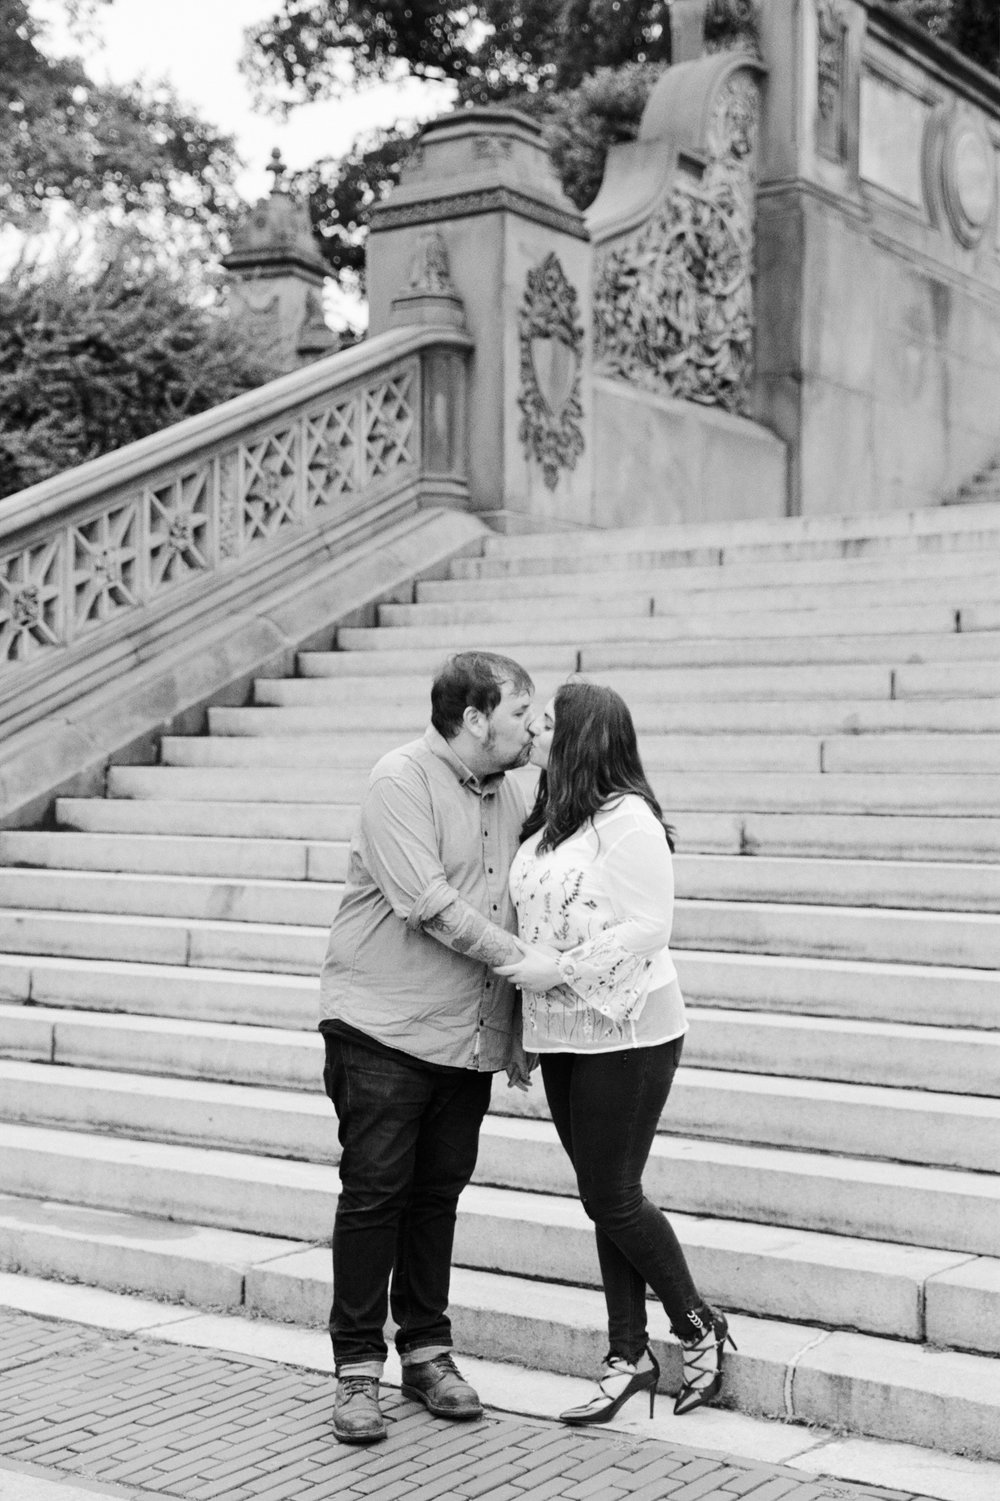 Central-Park-NYC-Engagement-Session-film-photography-43.jpg